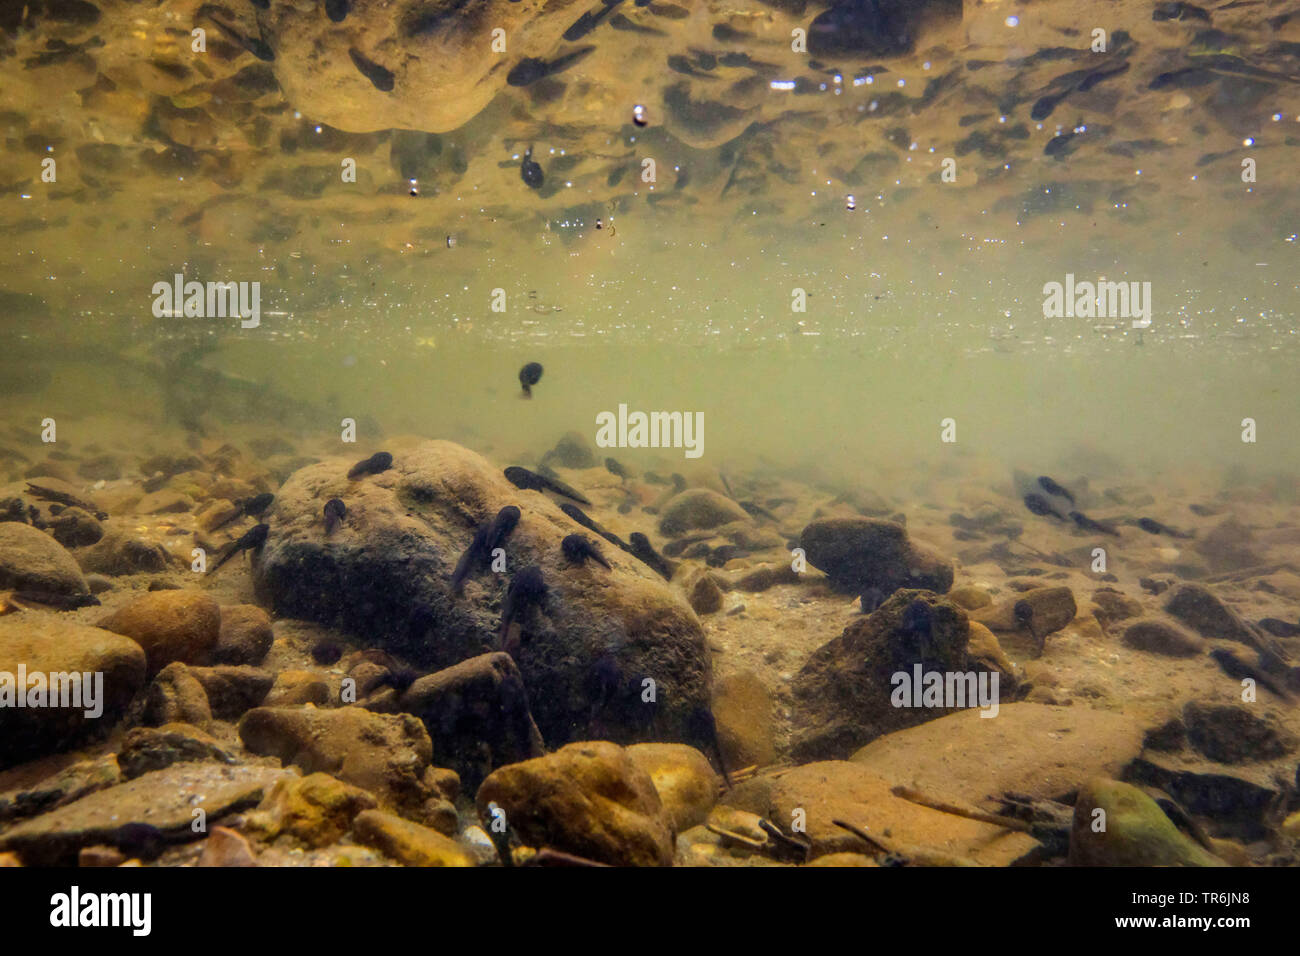 common frog, grass frog (Rana temporaria), polliwogs feeding on algae on pebble stones in a little creek, Germany, Bavaria - Stock Image